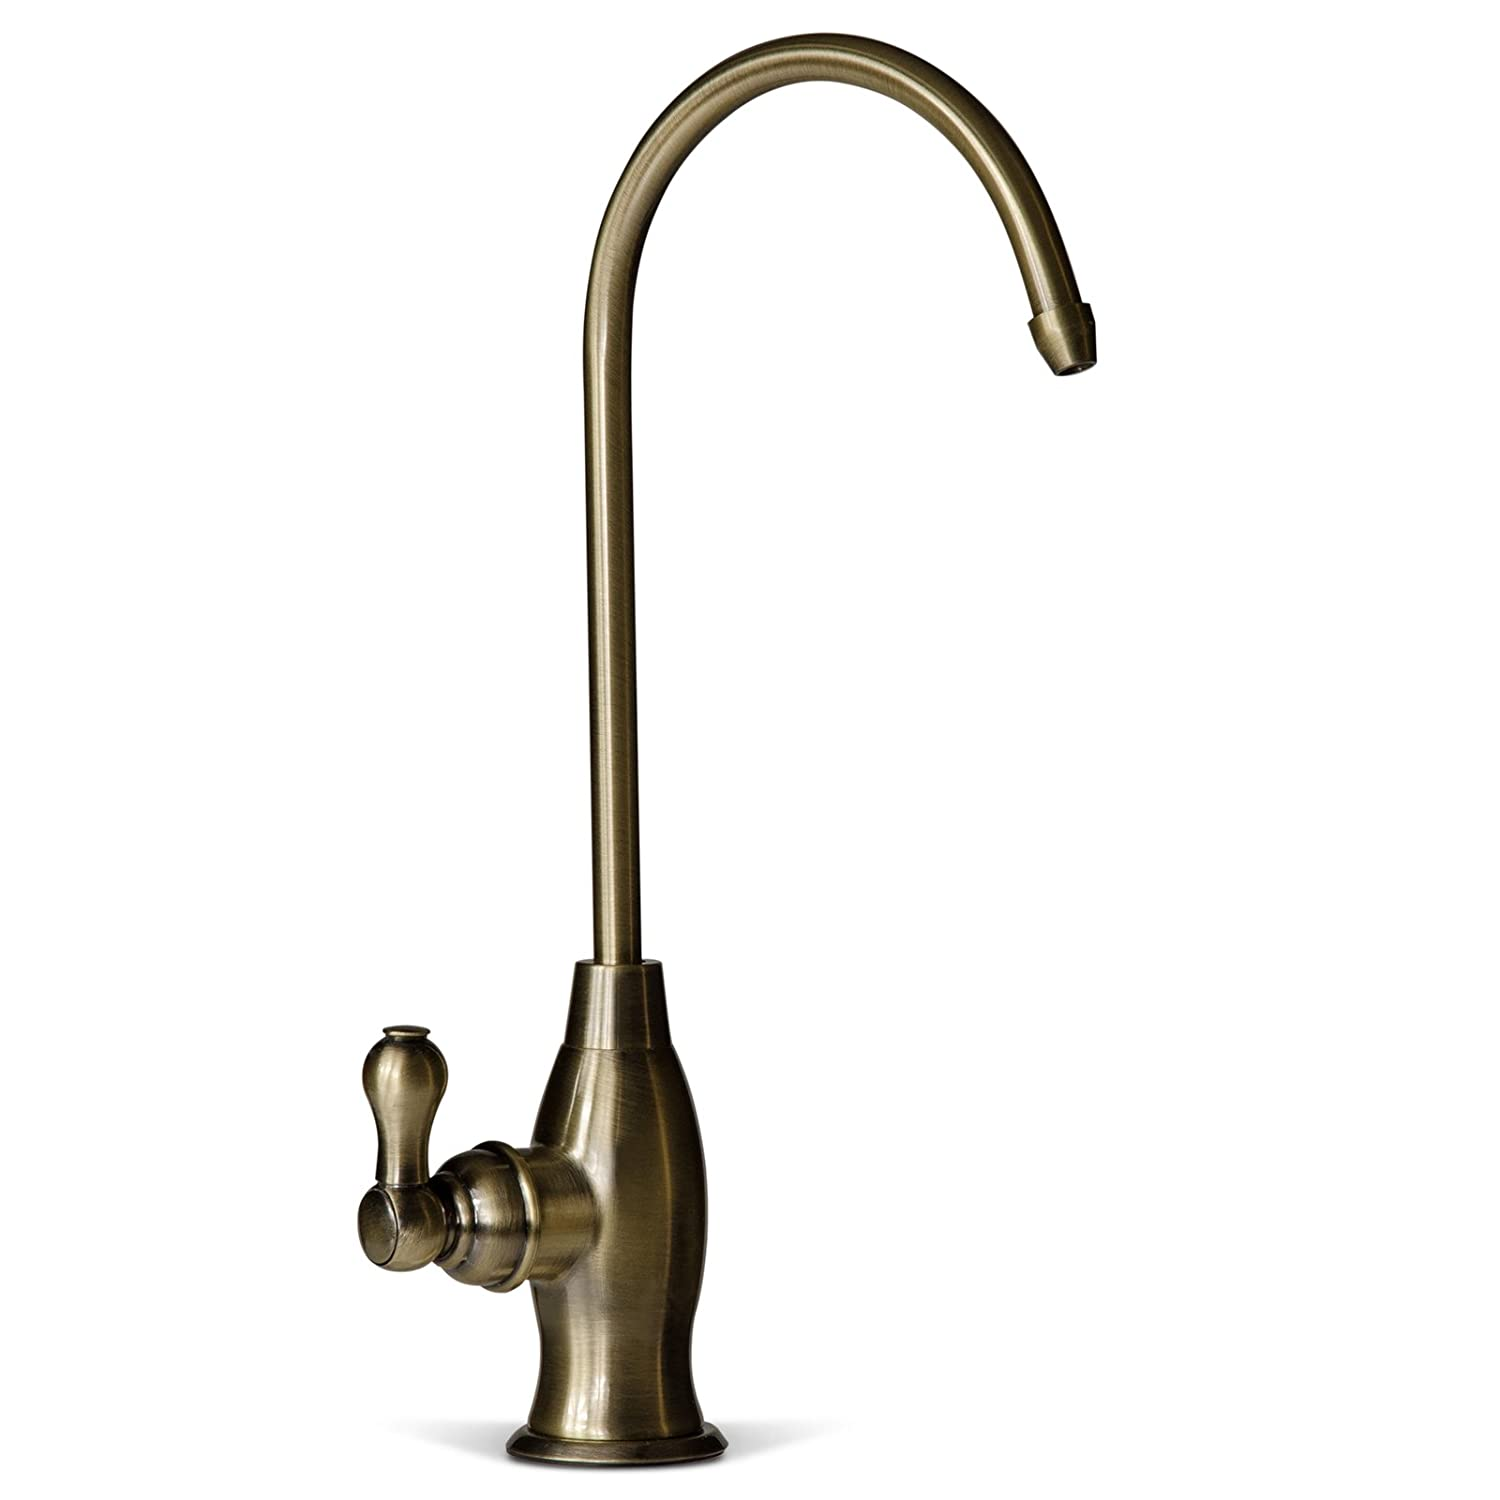 iSpring GK1-AB Heavy Duty Kitchen Bar Sink Drinking Water Faucet, Commercial Water Filtration Faucet Antique Brass Designer Coke Shaped Style High Spout